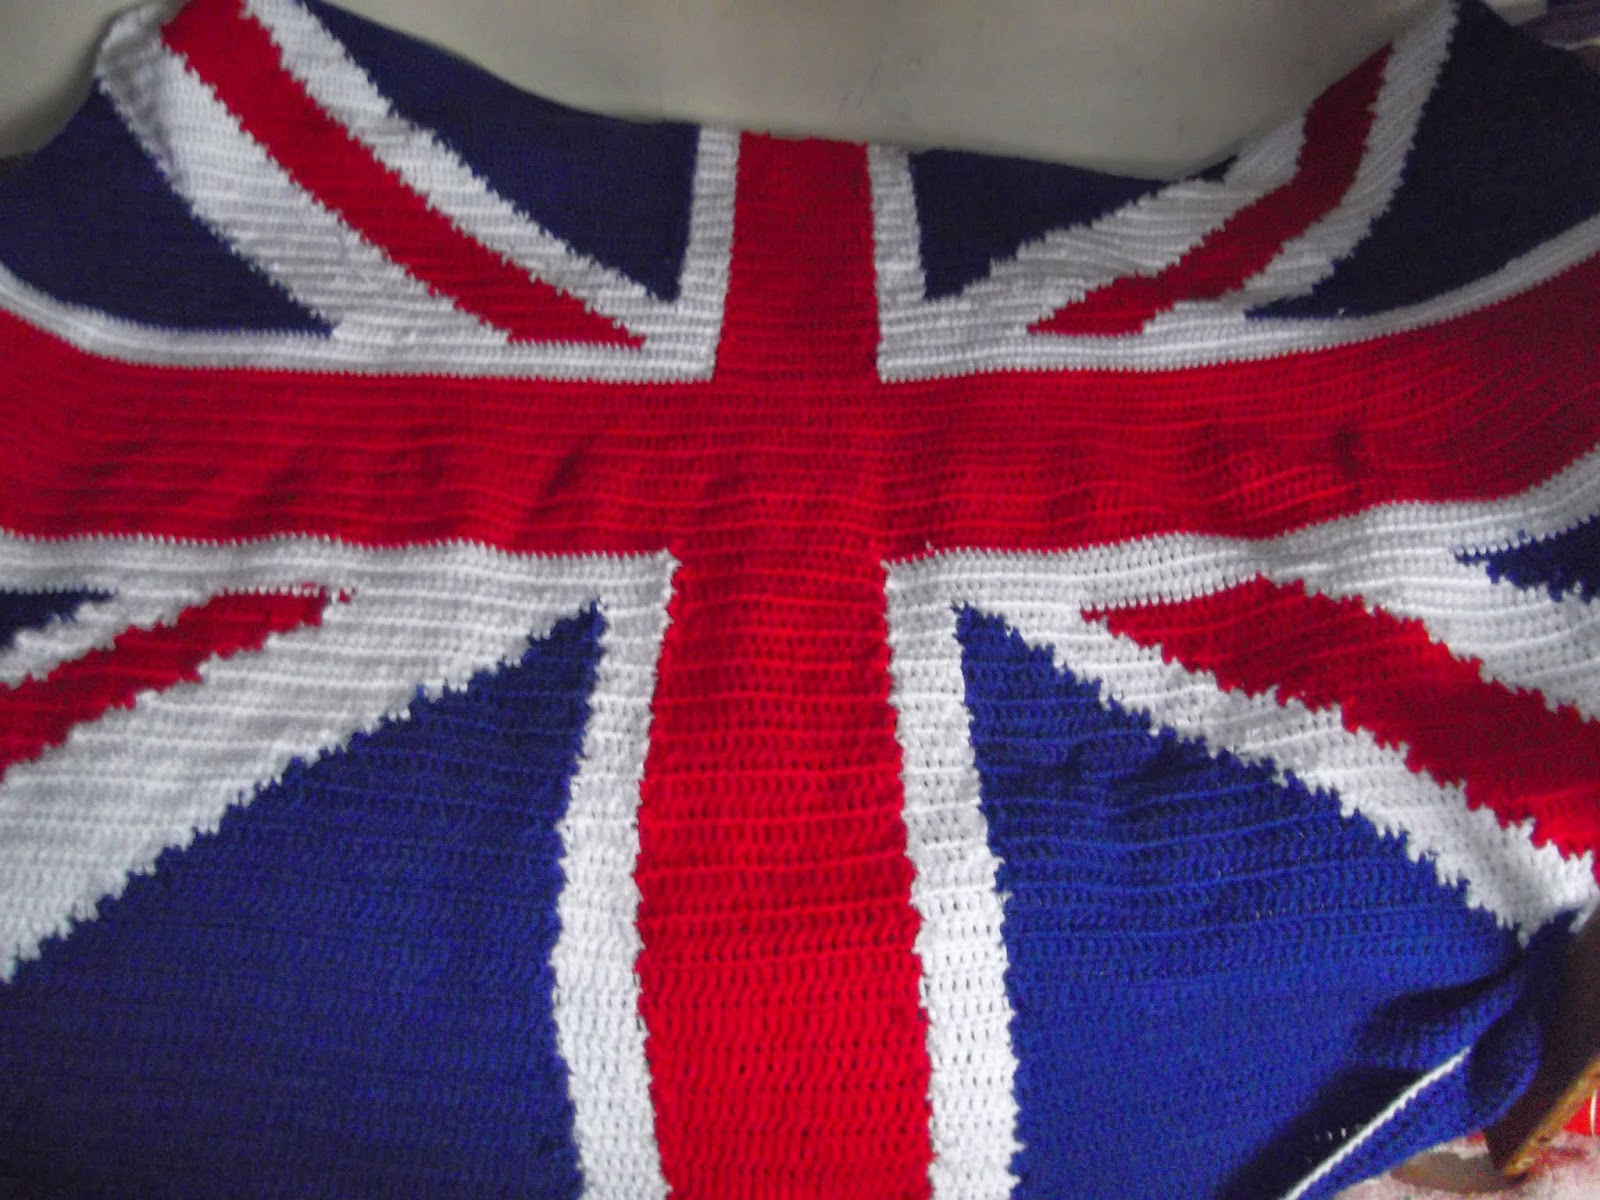 Knitting Pattern For Union Jack Blanket : Bits and Bobs Zone: union Jack Blanket